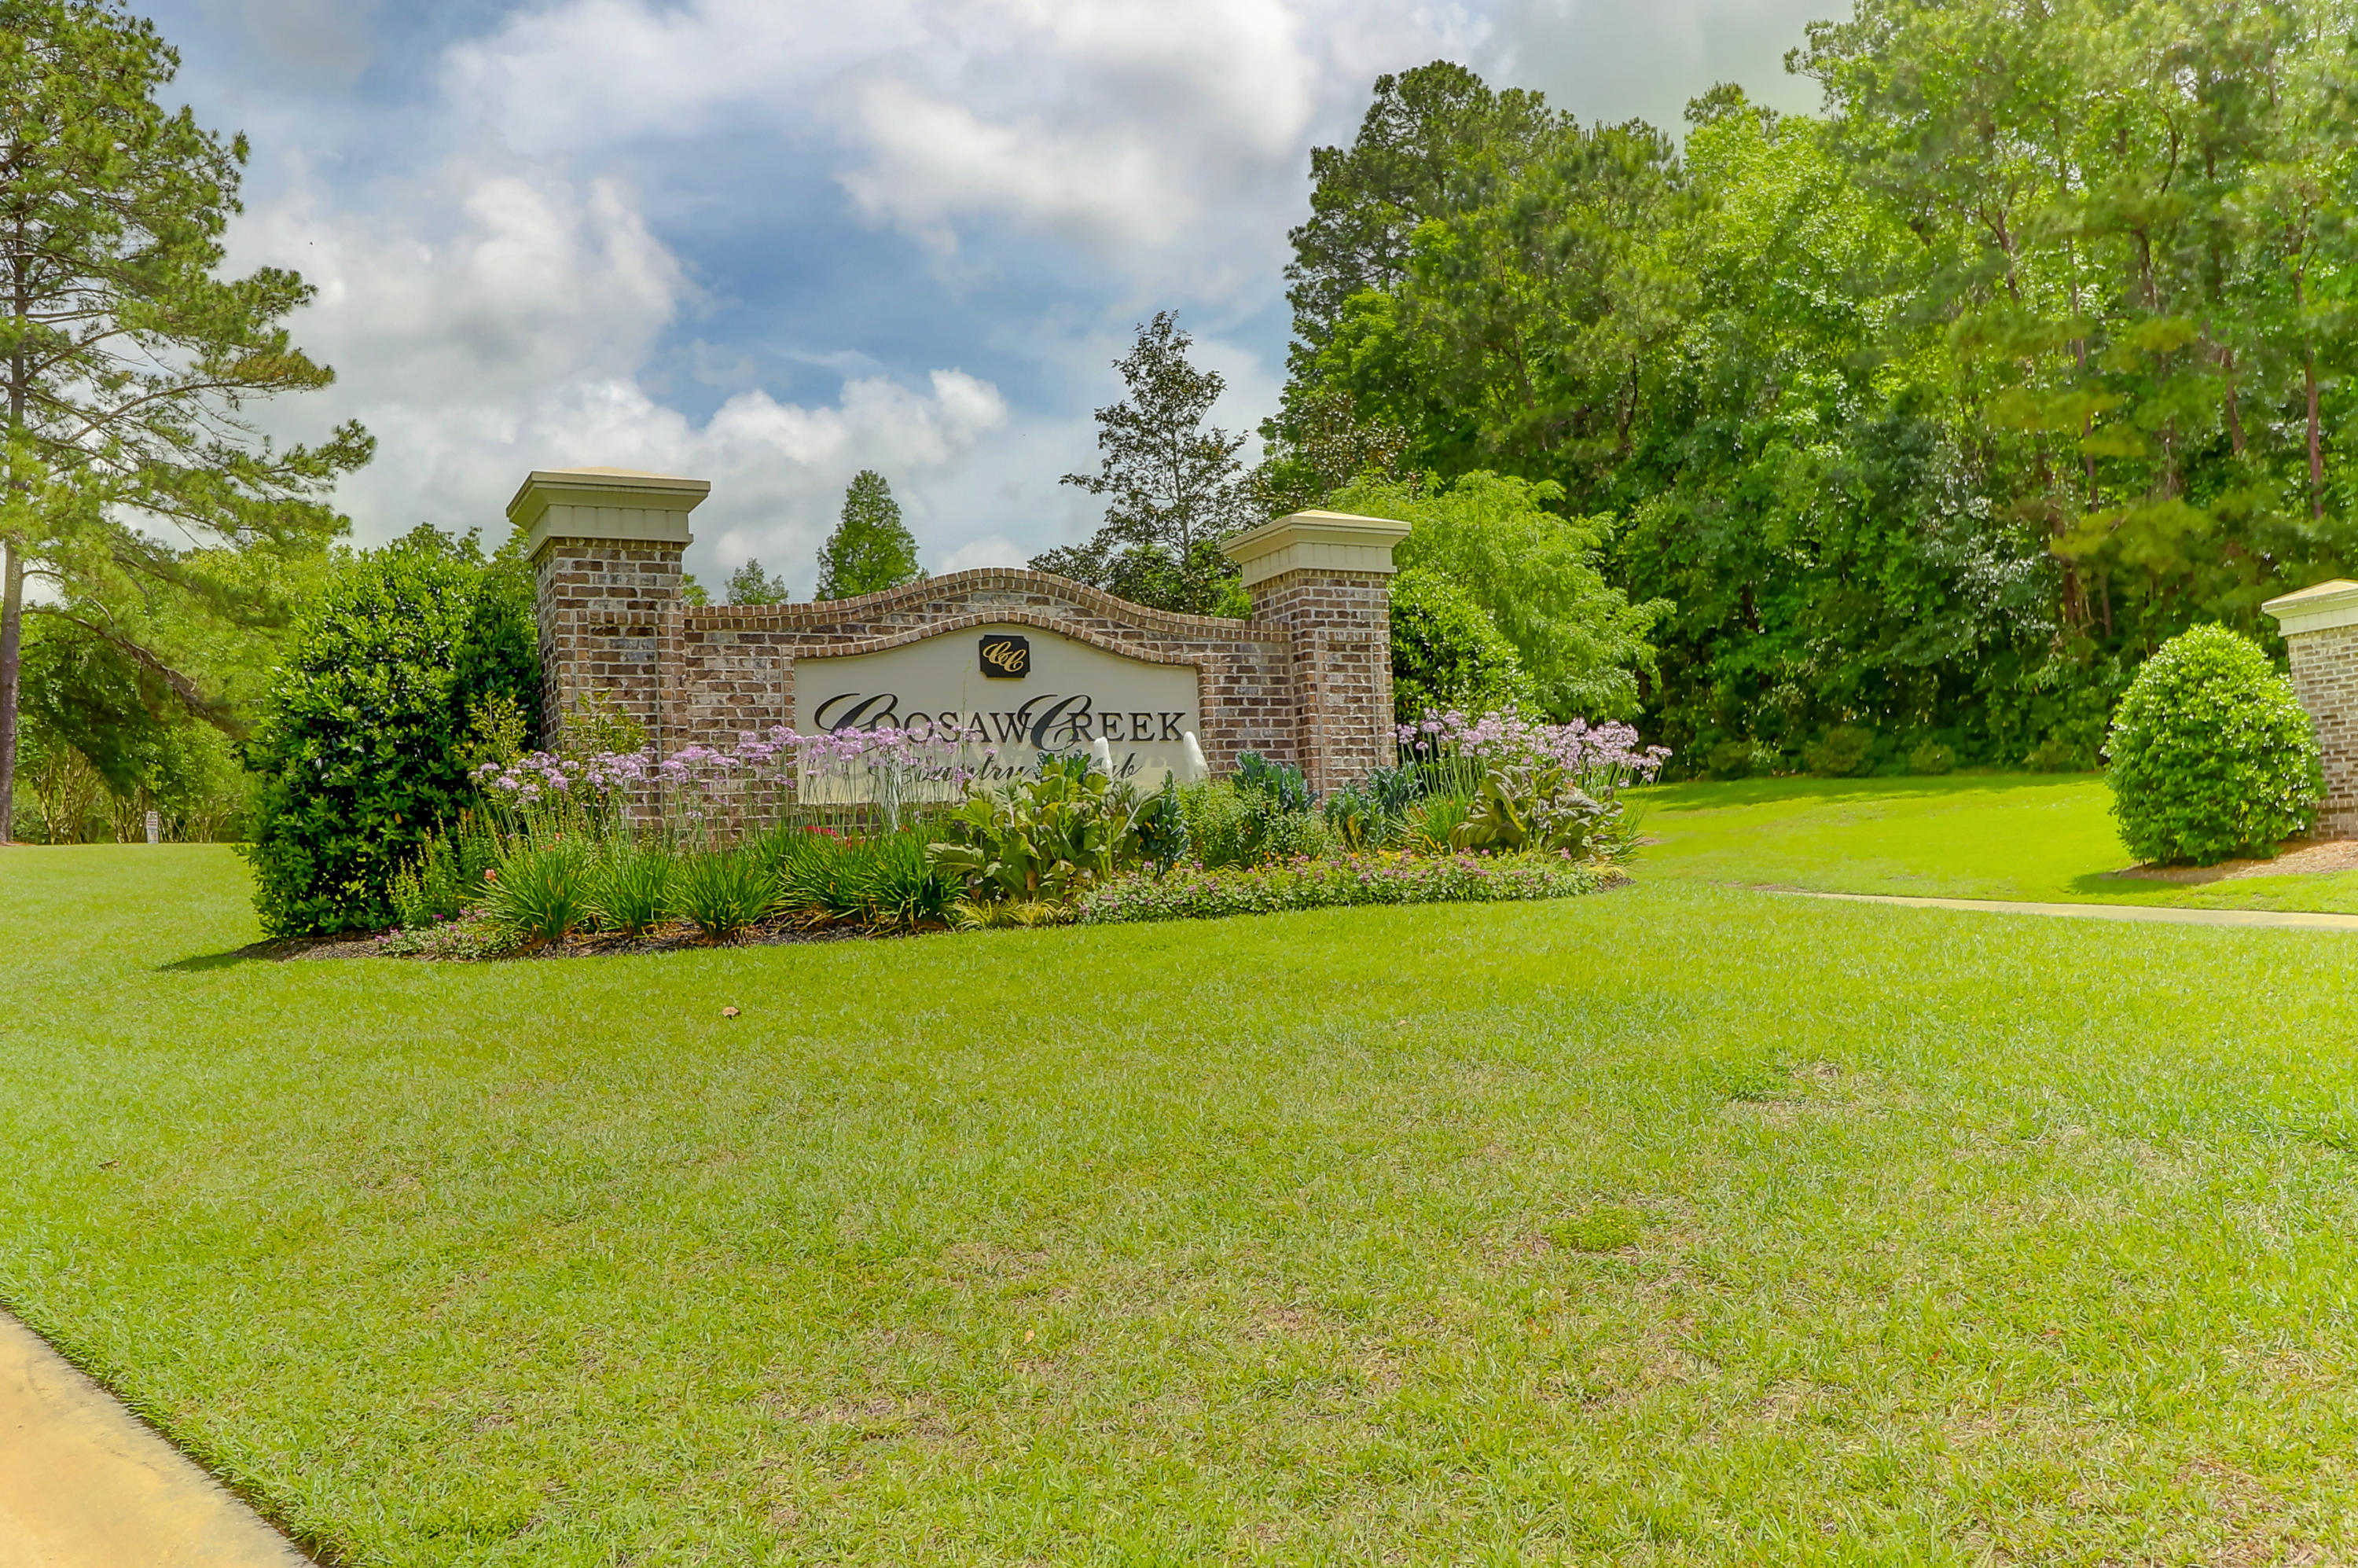 Coosaw Creek Country Club Homes For Sale - 8700 Fairway Woods, North Charleston, SC - 22